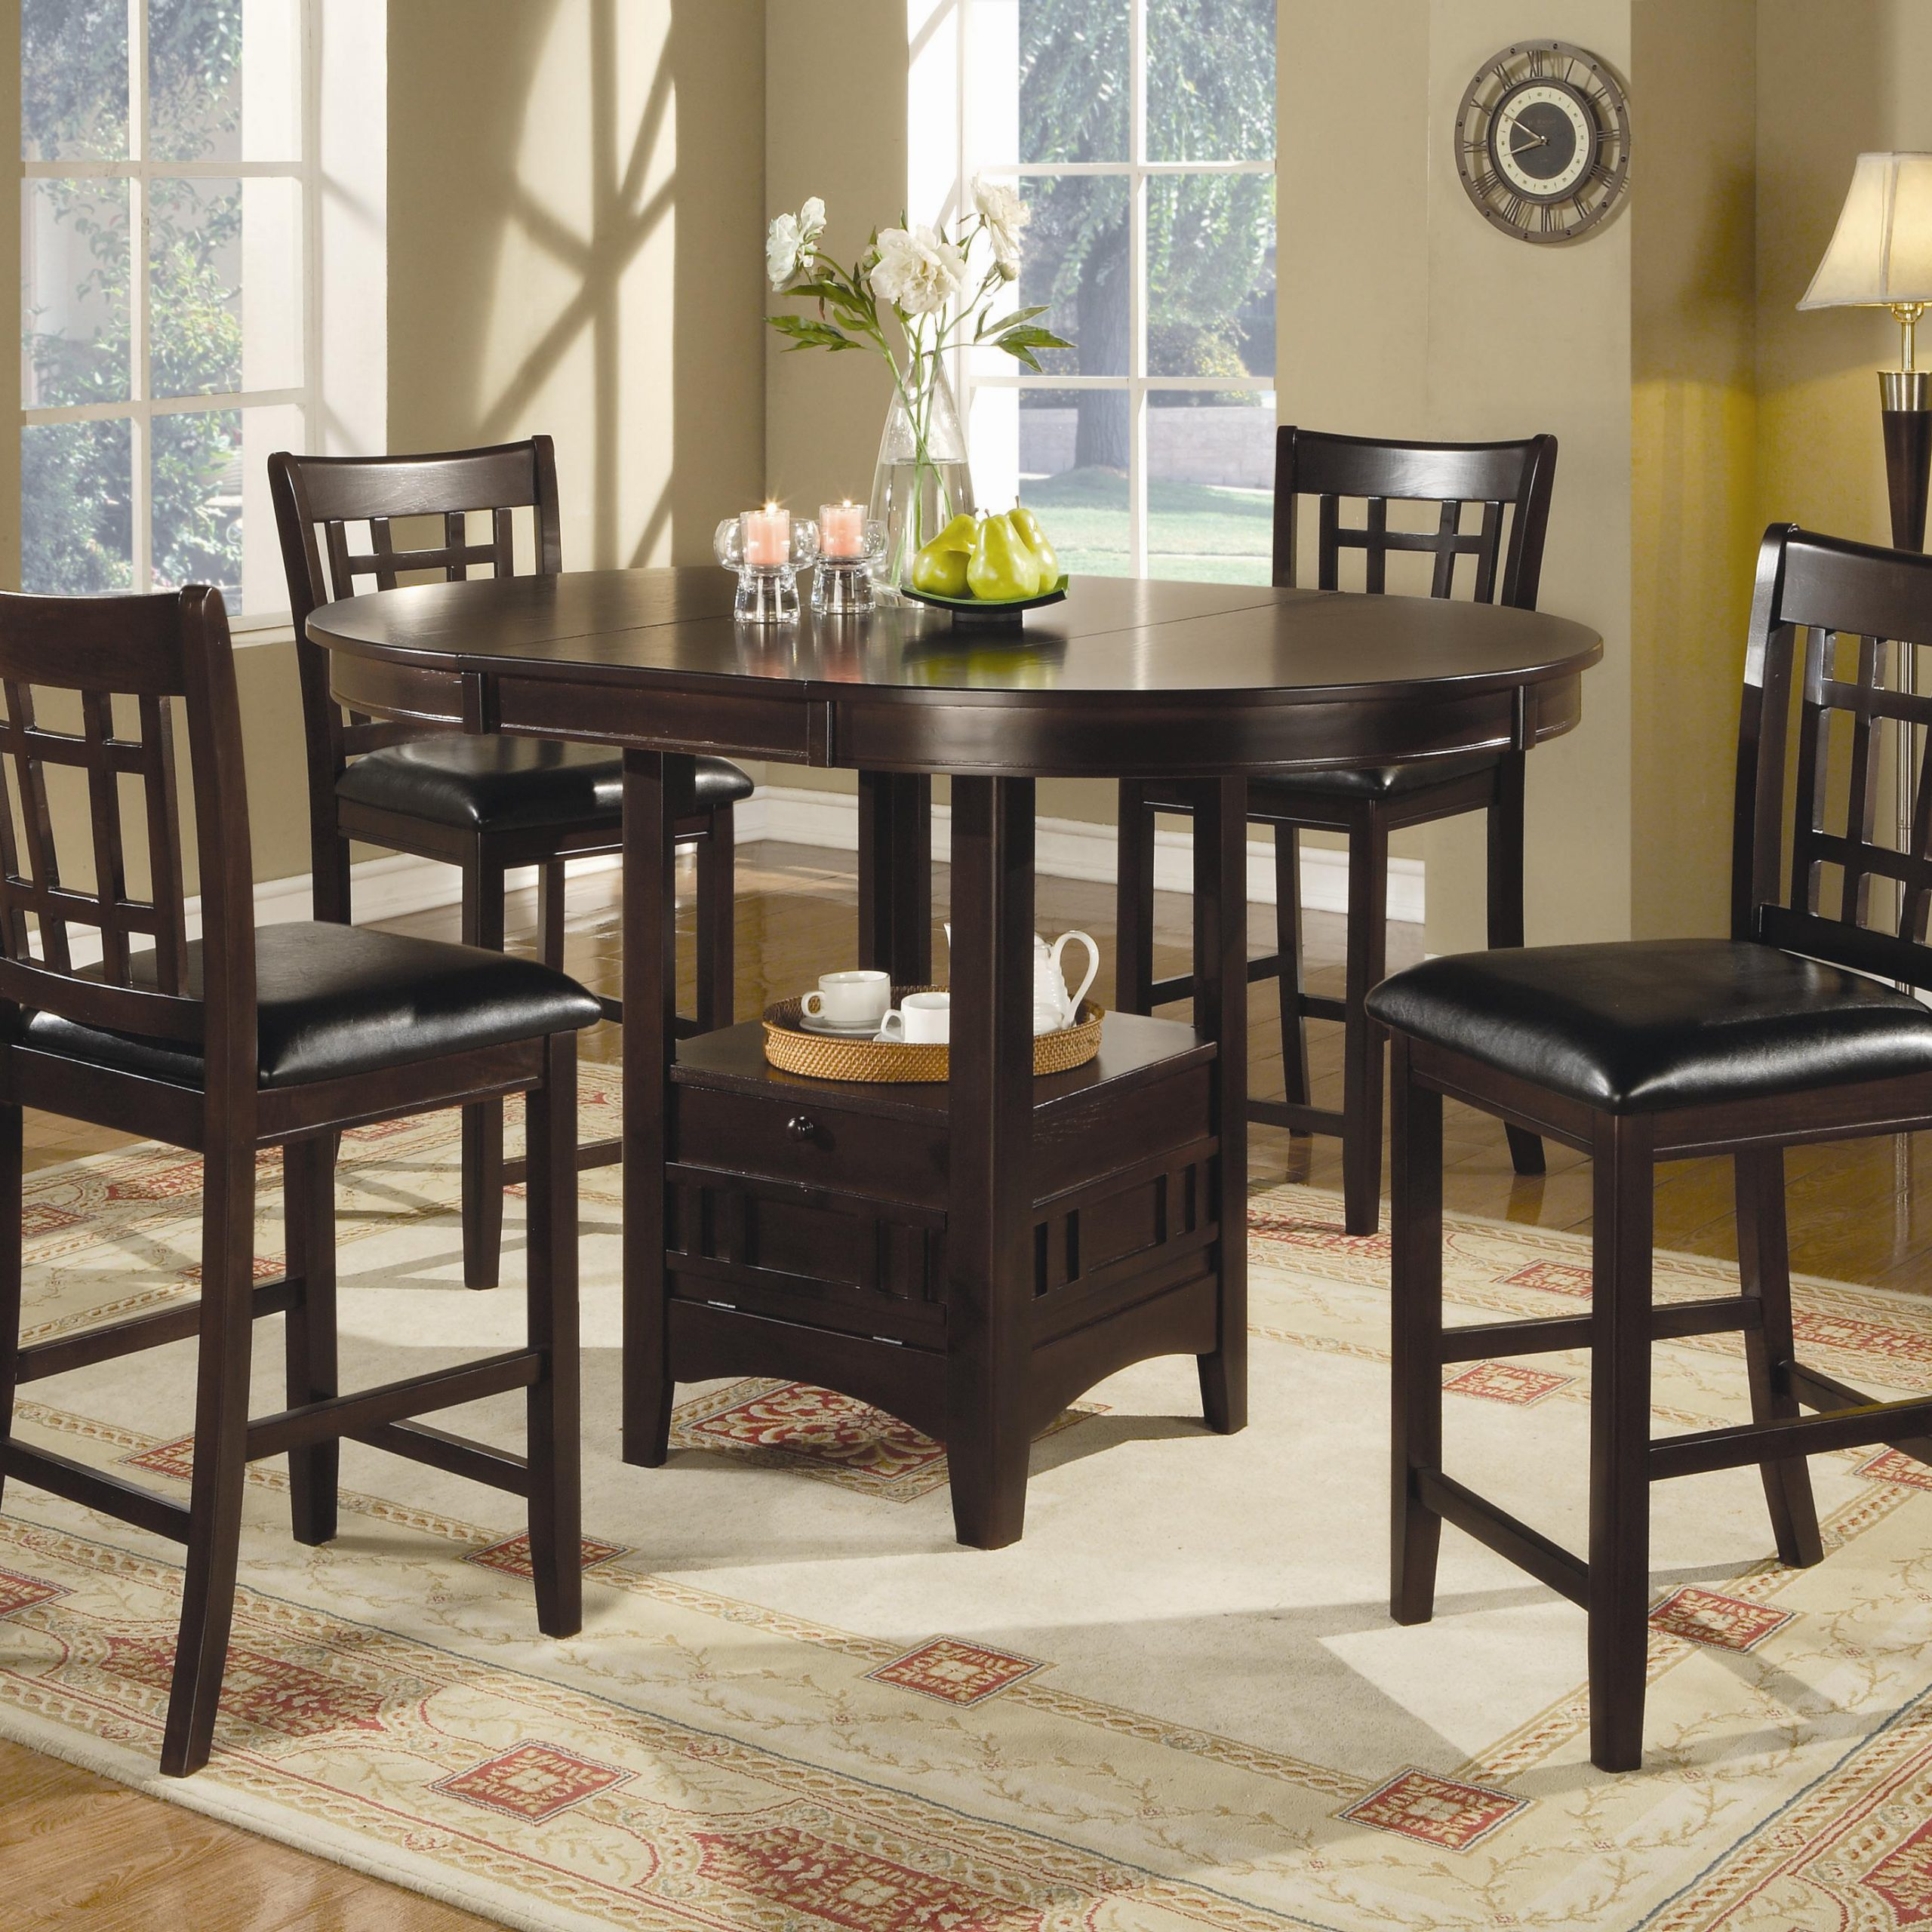 Lavon 7 Piece Counter Table And Chair Set With 2018 Avondale Counter Height Dining Tables (View 15 of 25)